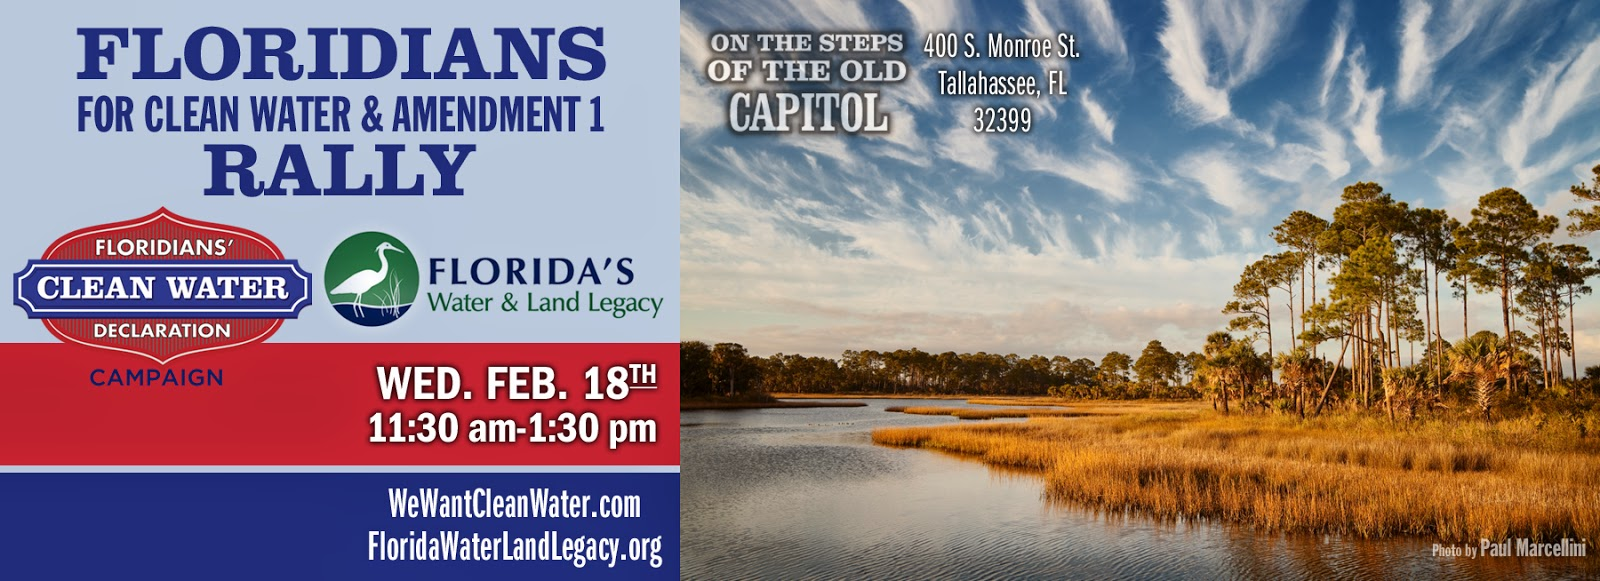 Everglades%2B1 tally%2Brally%2Bgraphic 2015 In: Make Your Plans for Amendment 1 Rally | Our Santa Fe River, Inc. (OSFR) | Protecting the Santa Fe River in North Florida